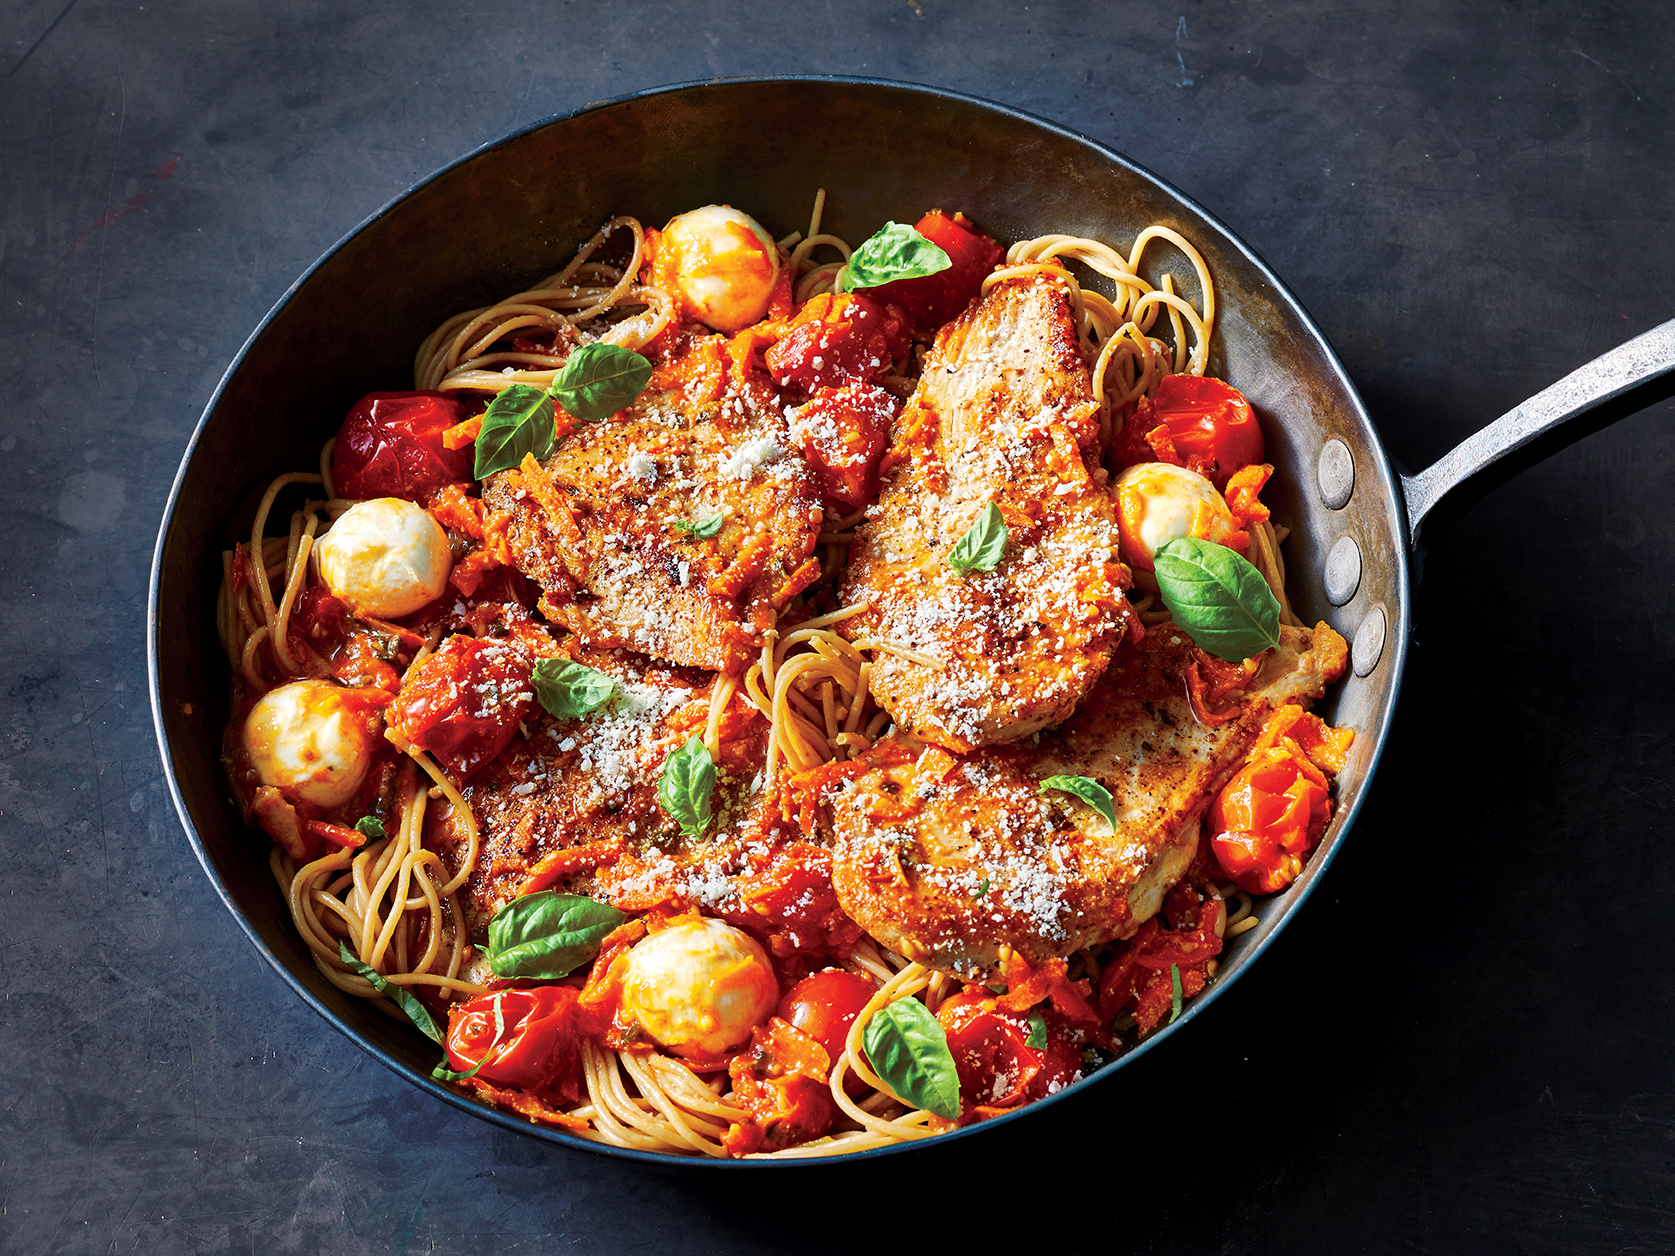 Tomato, Basil, and Chicken Pasta